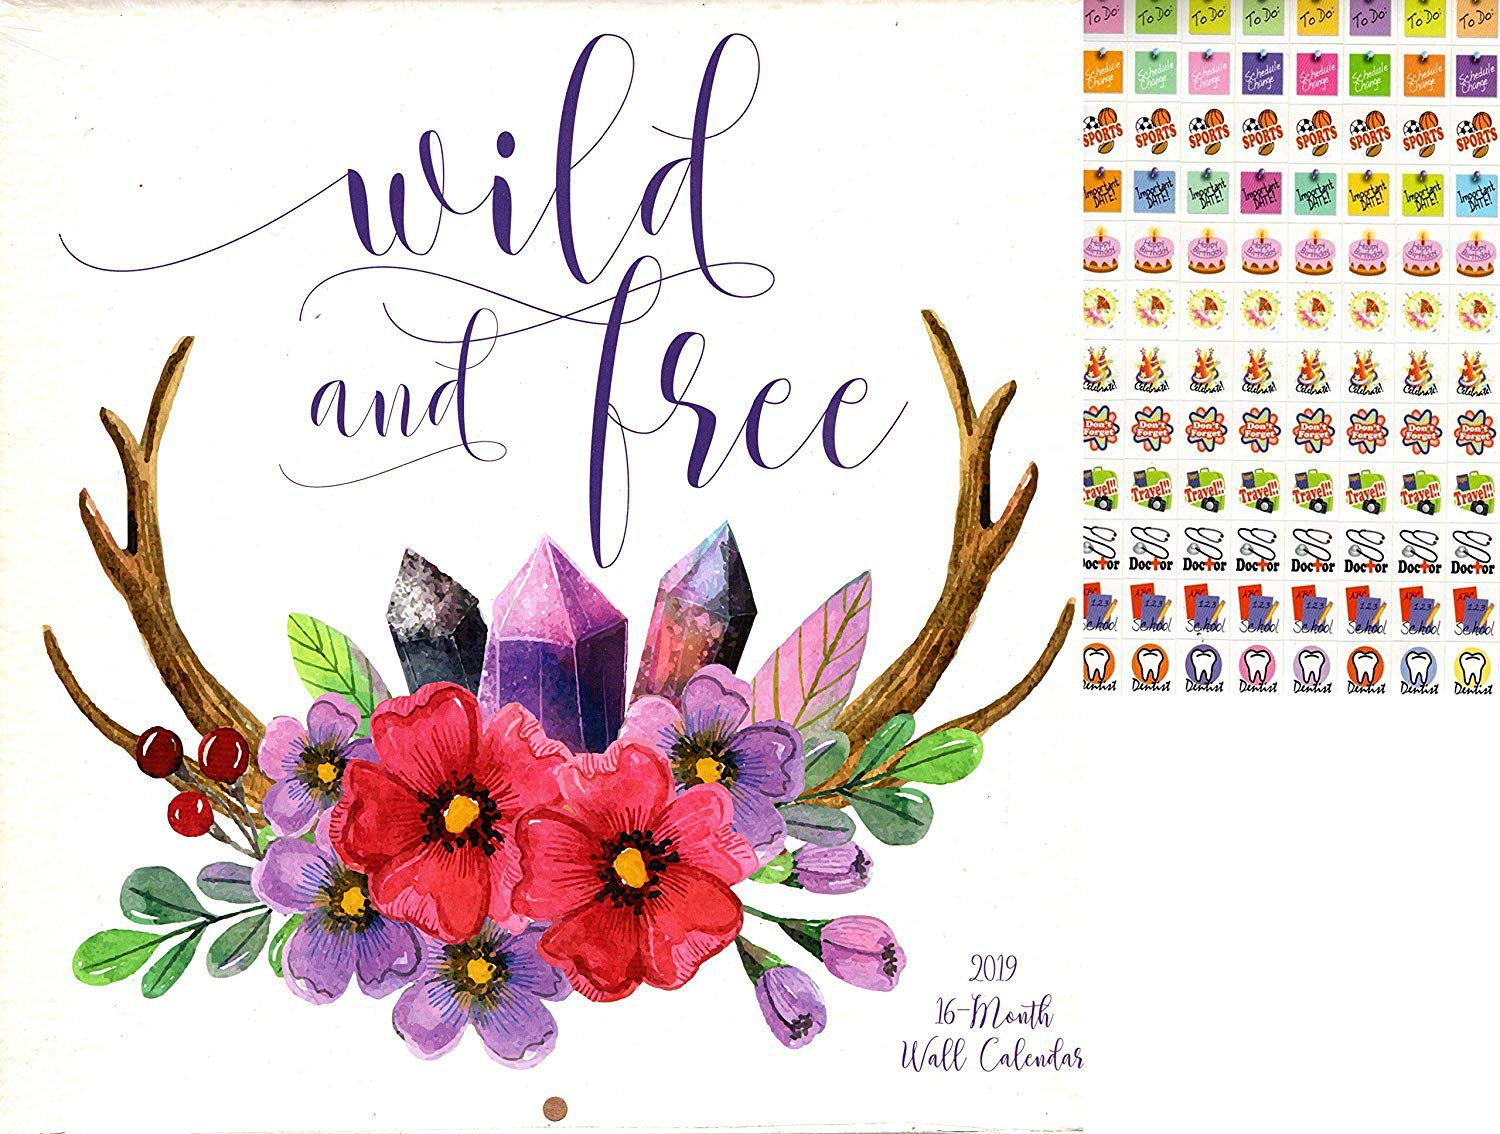 Vista 2019 Wild and Free - 16 Month Wall Calendar + 120 Reminder Stickers